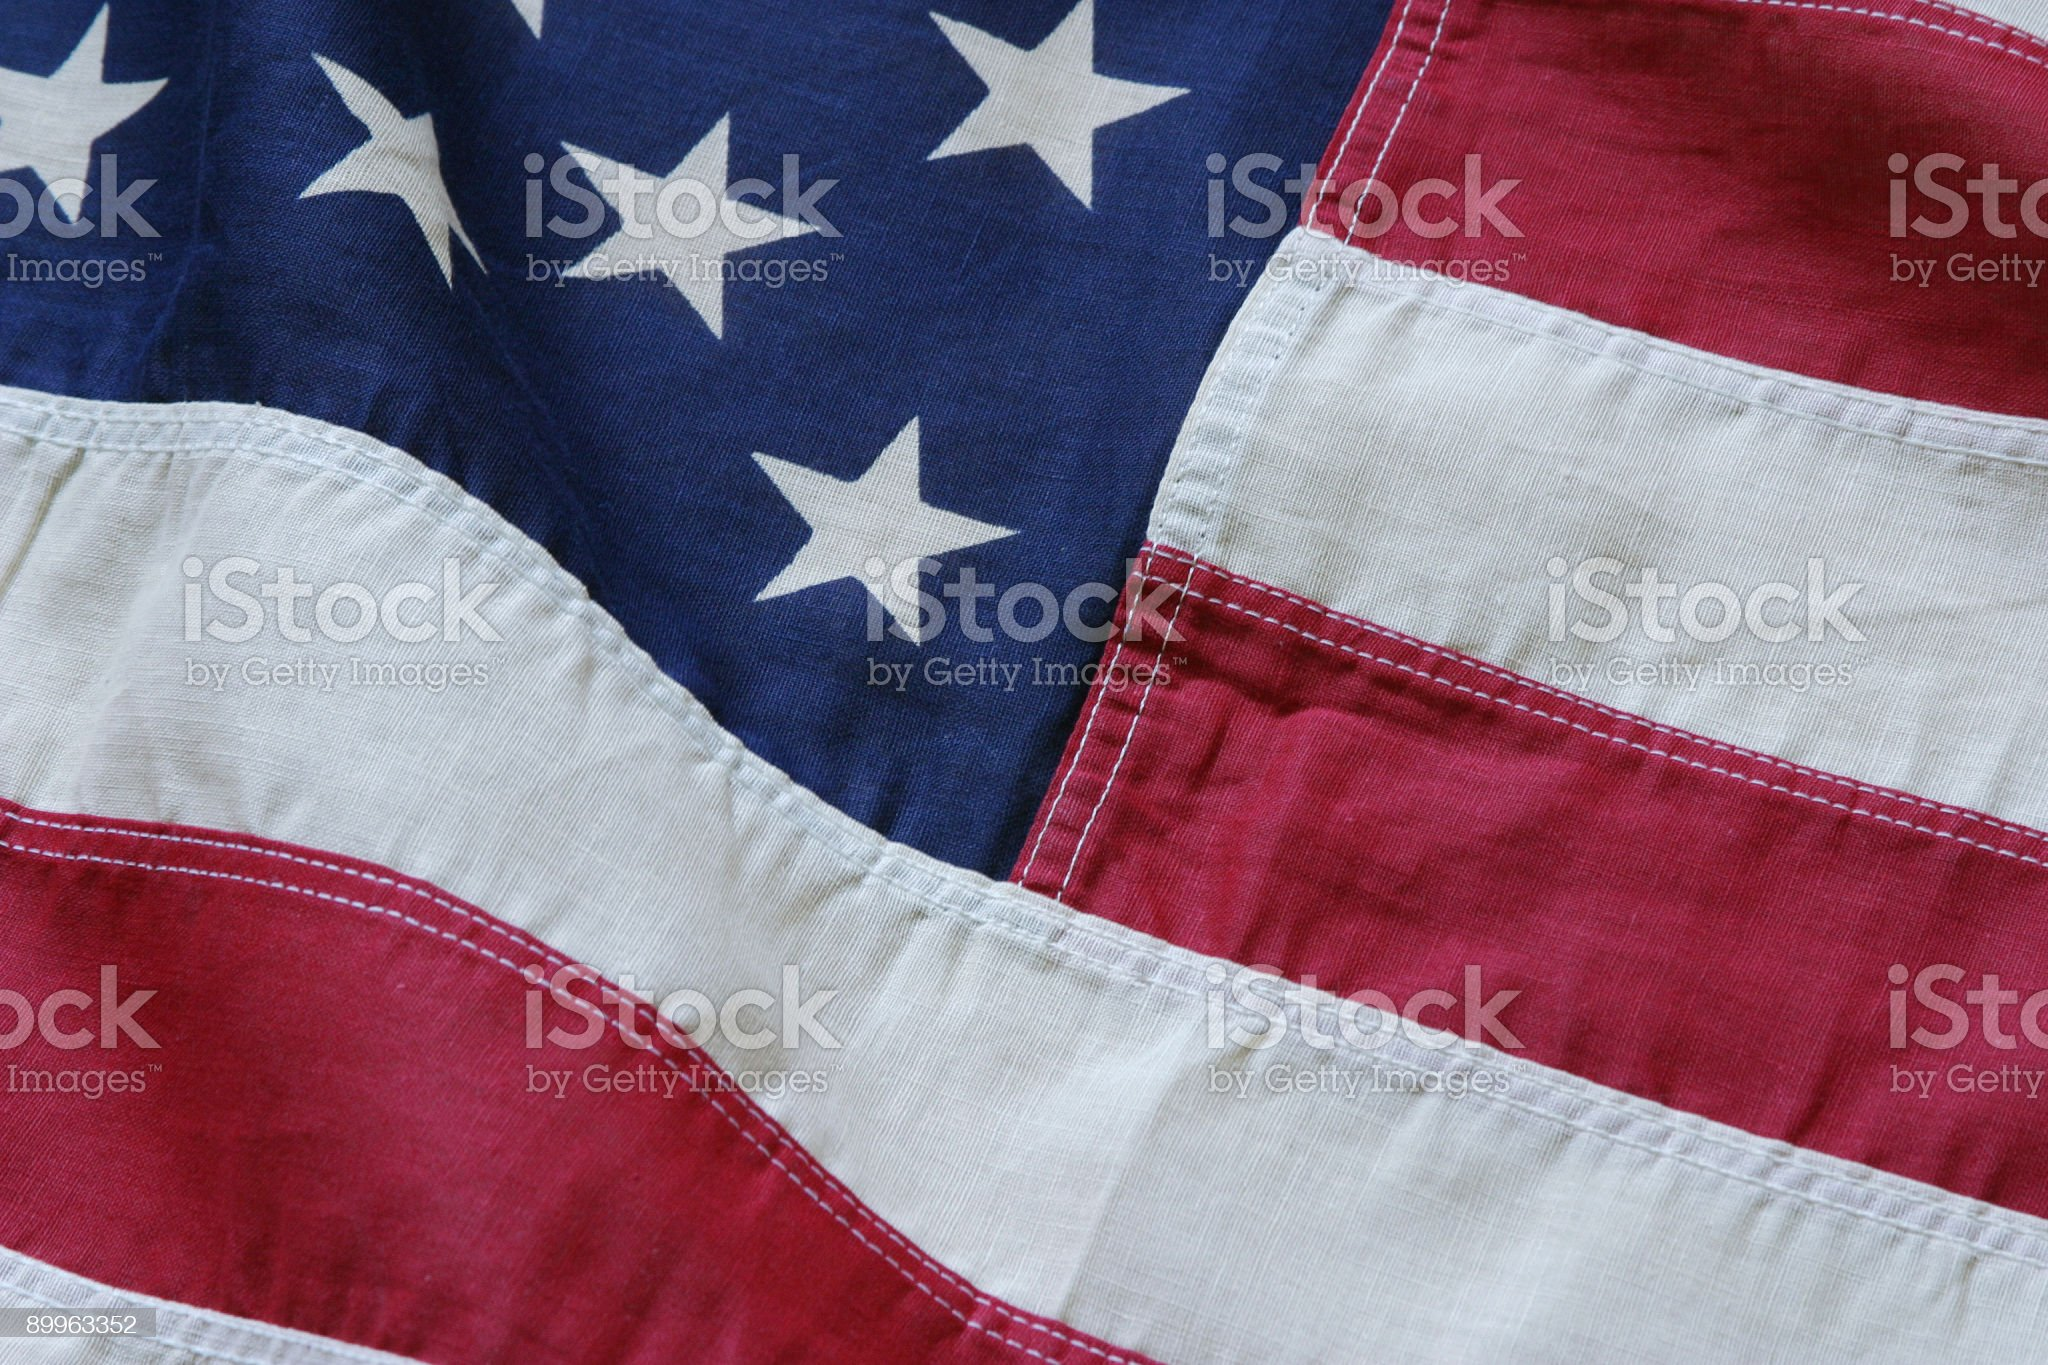 American flag detail royalty-free stock photo